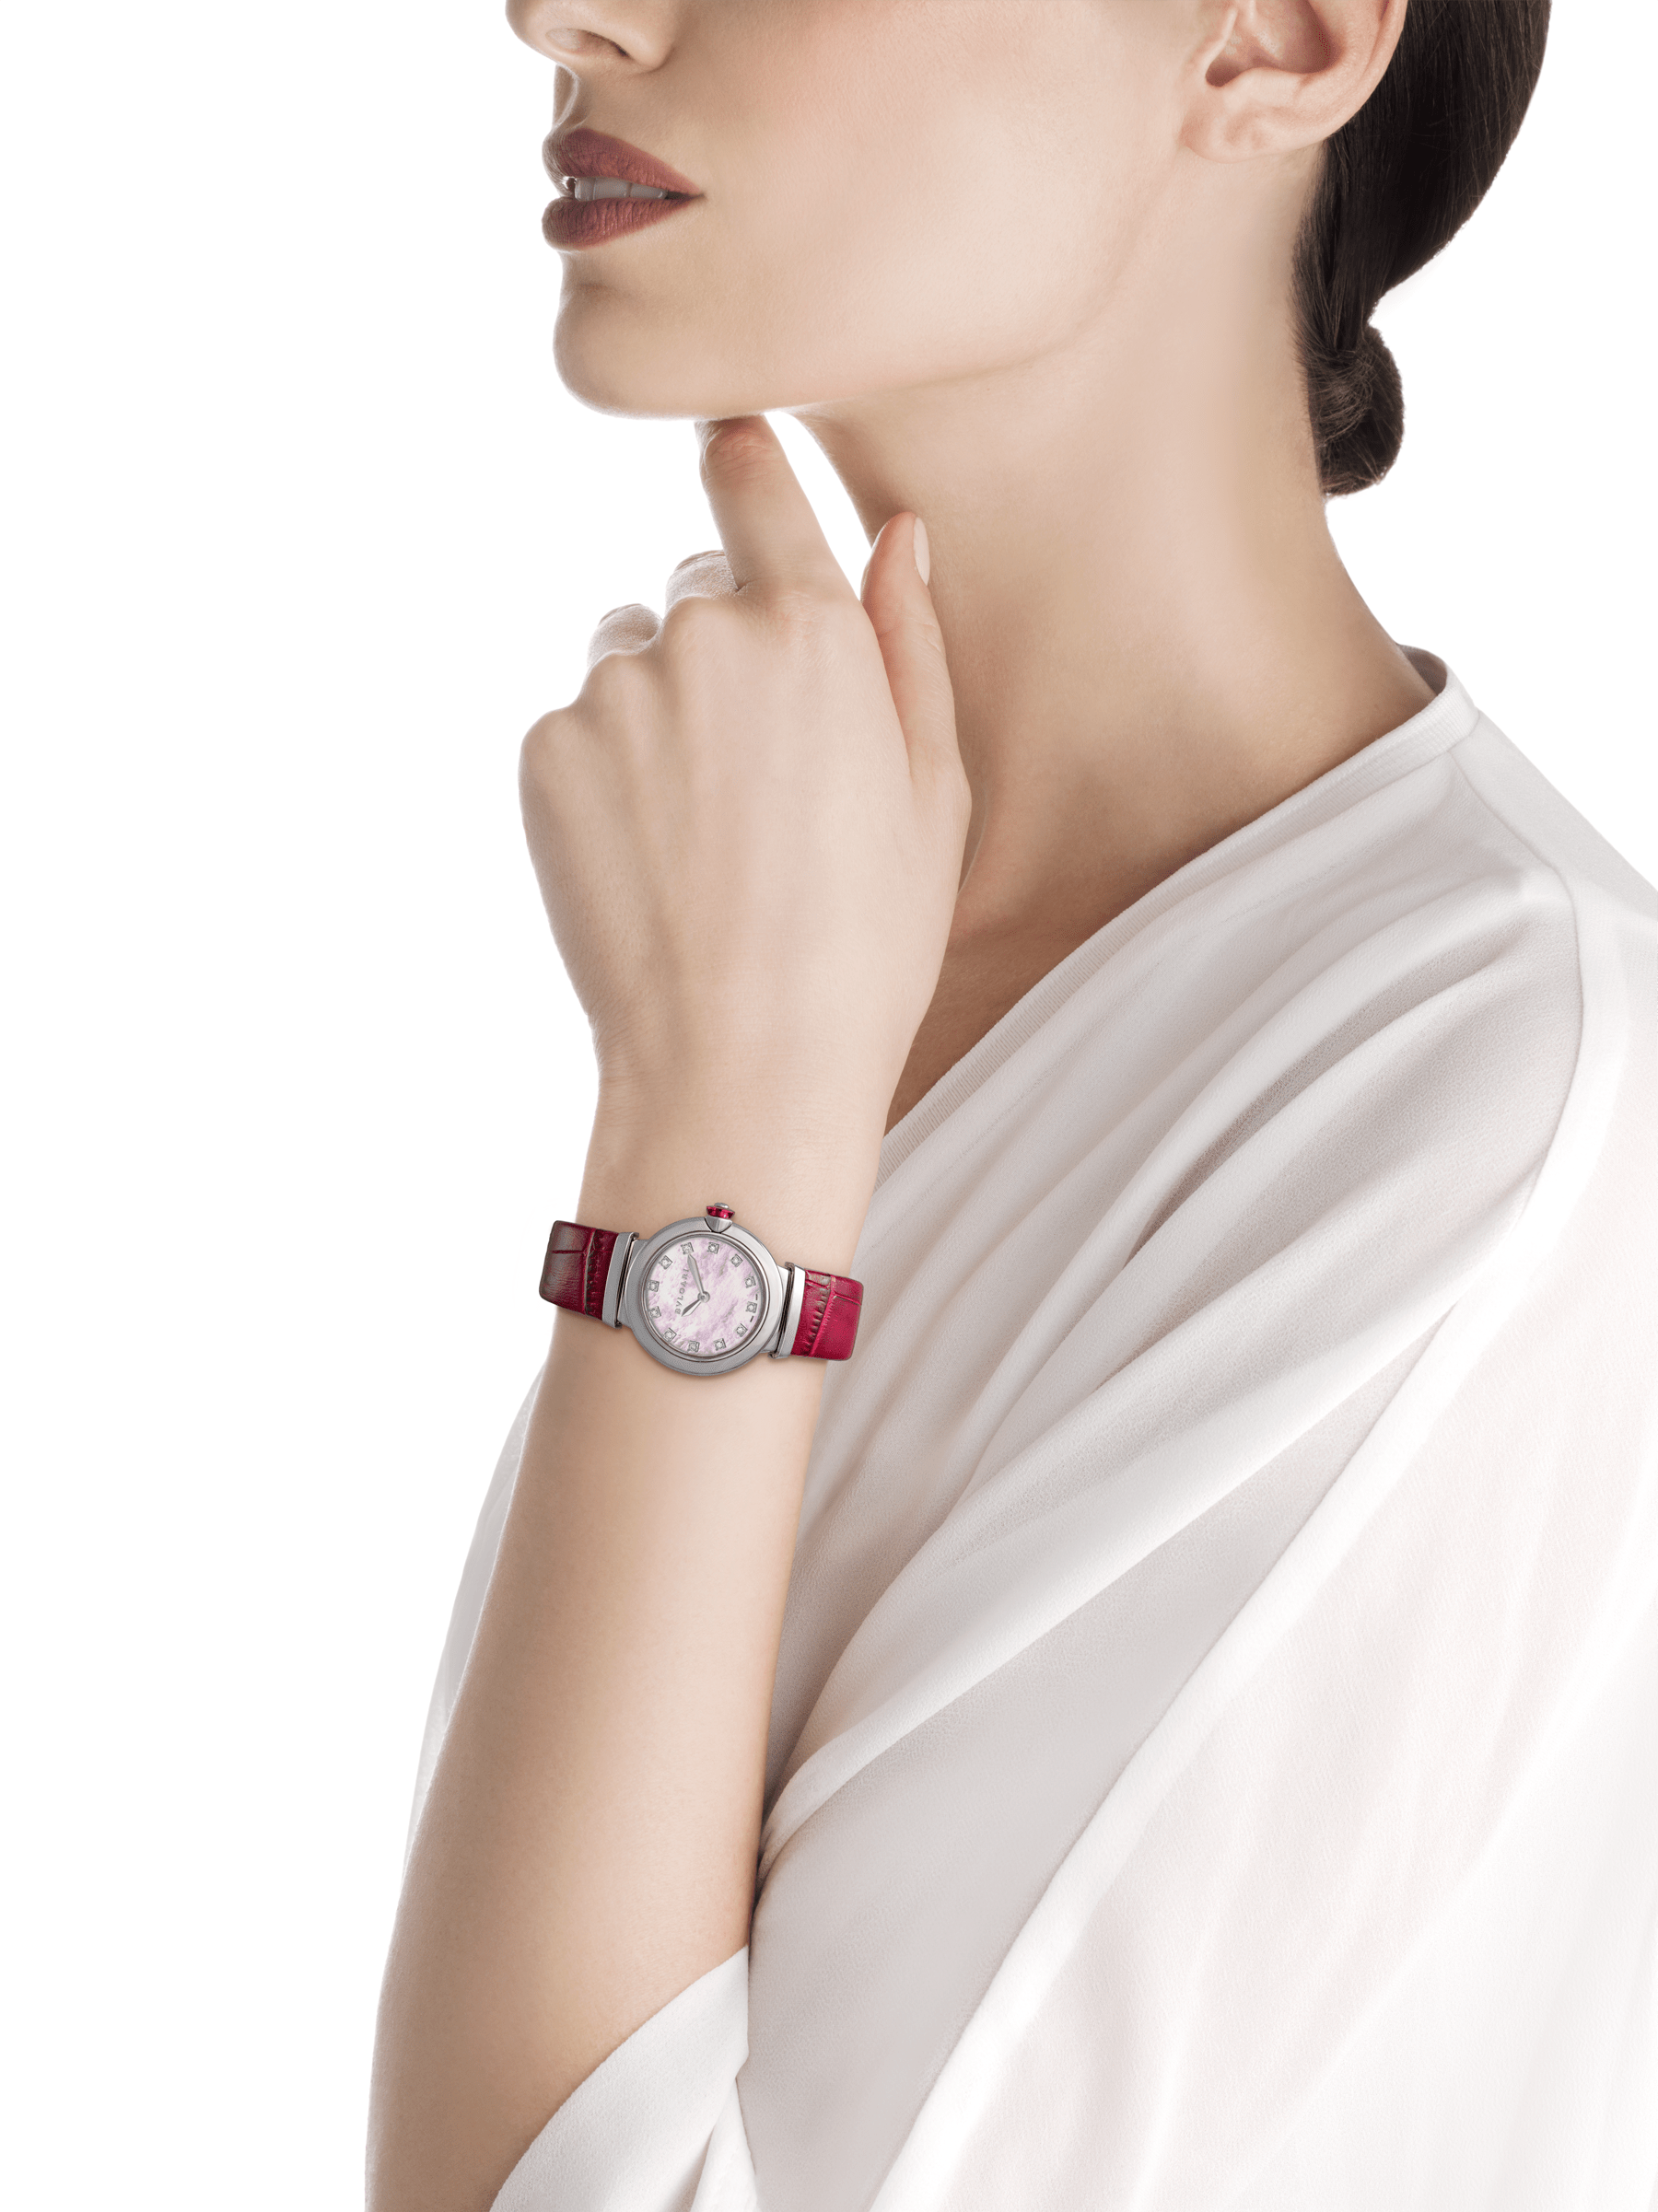 LVCEA watch with stainless steel case, pink mother-of-pearl dial, diamond indexes and burgundy alligator bracelet. 102608 image 2